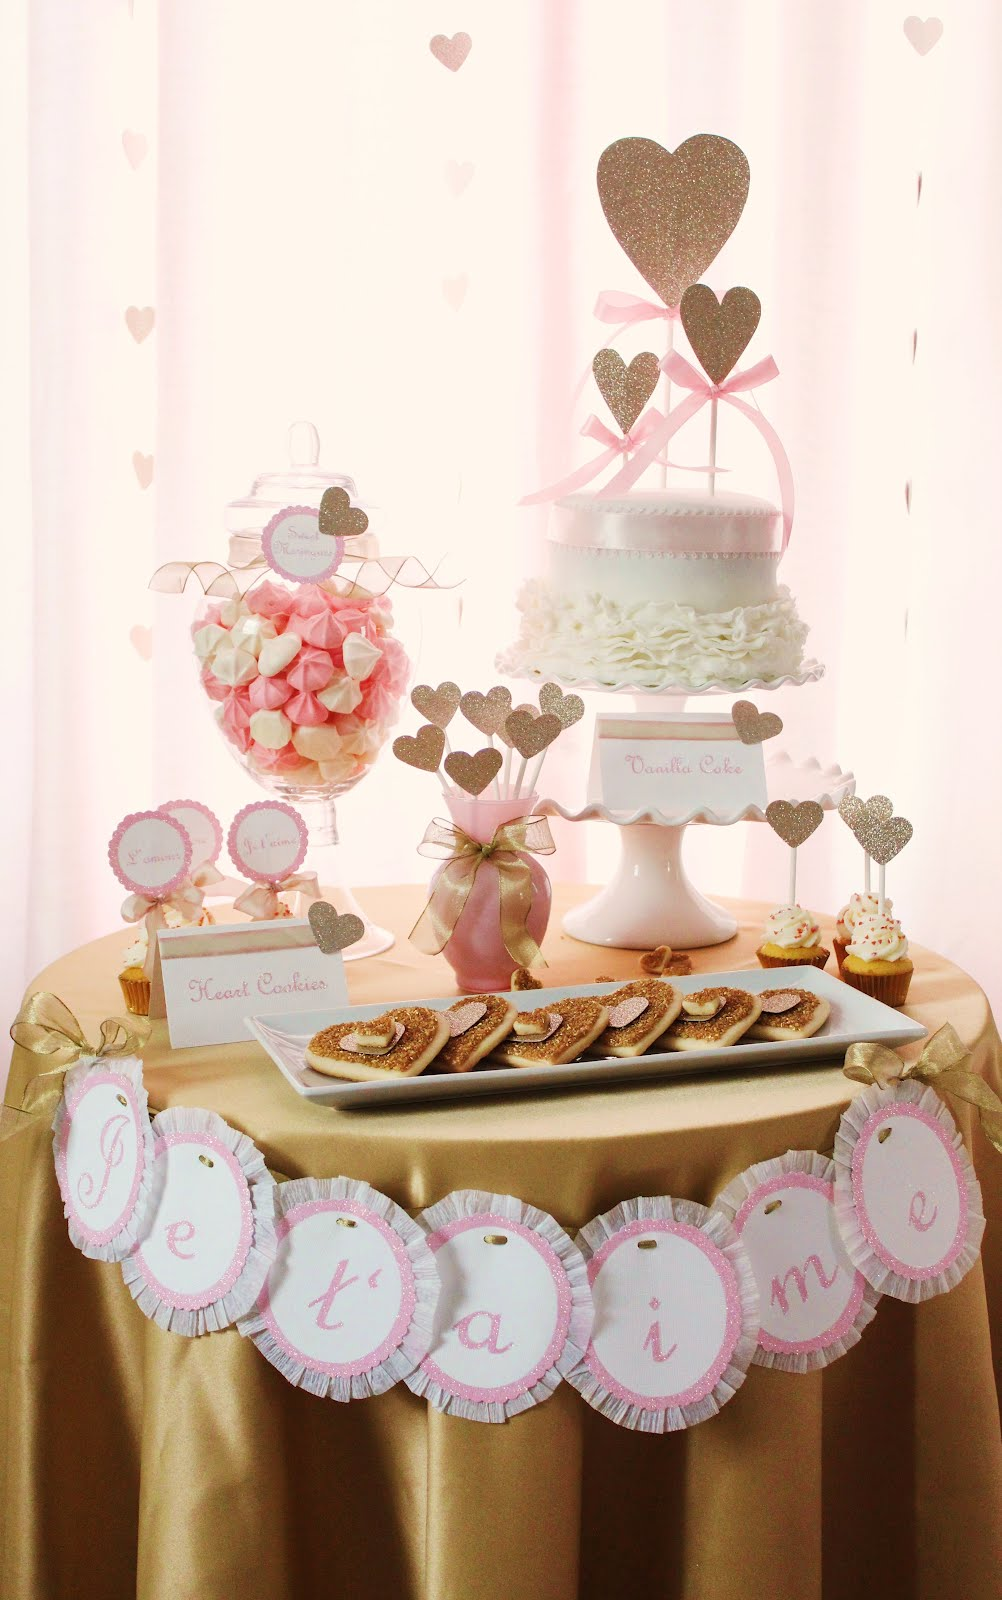 Pink And Gold Bathroom Decor: Icing Designs: Pink And Gold Valentine's Day Inspired Table